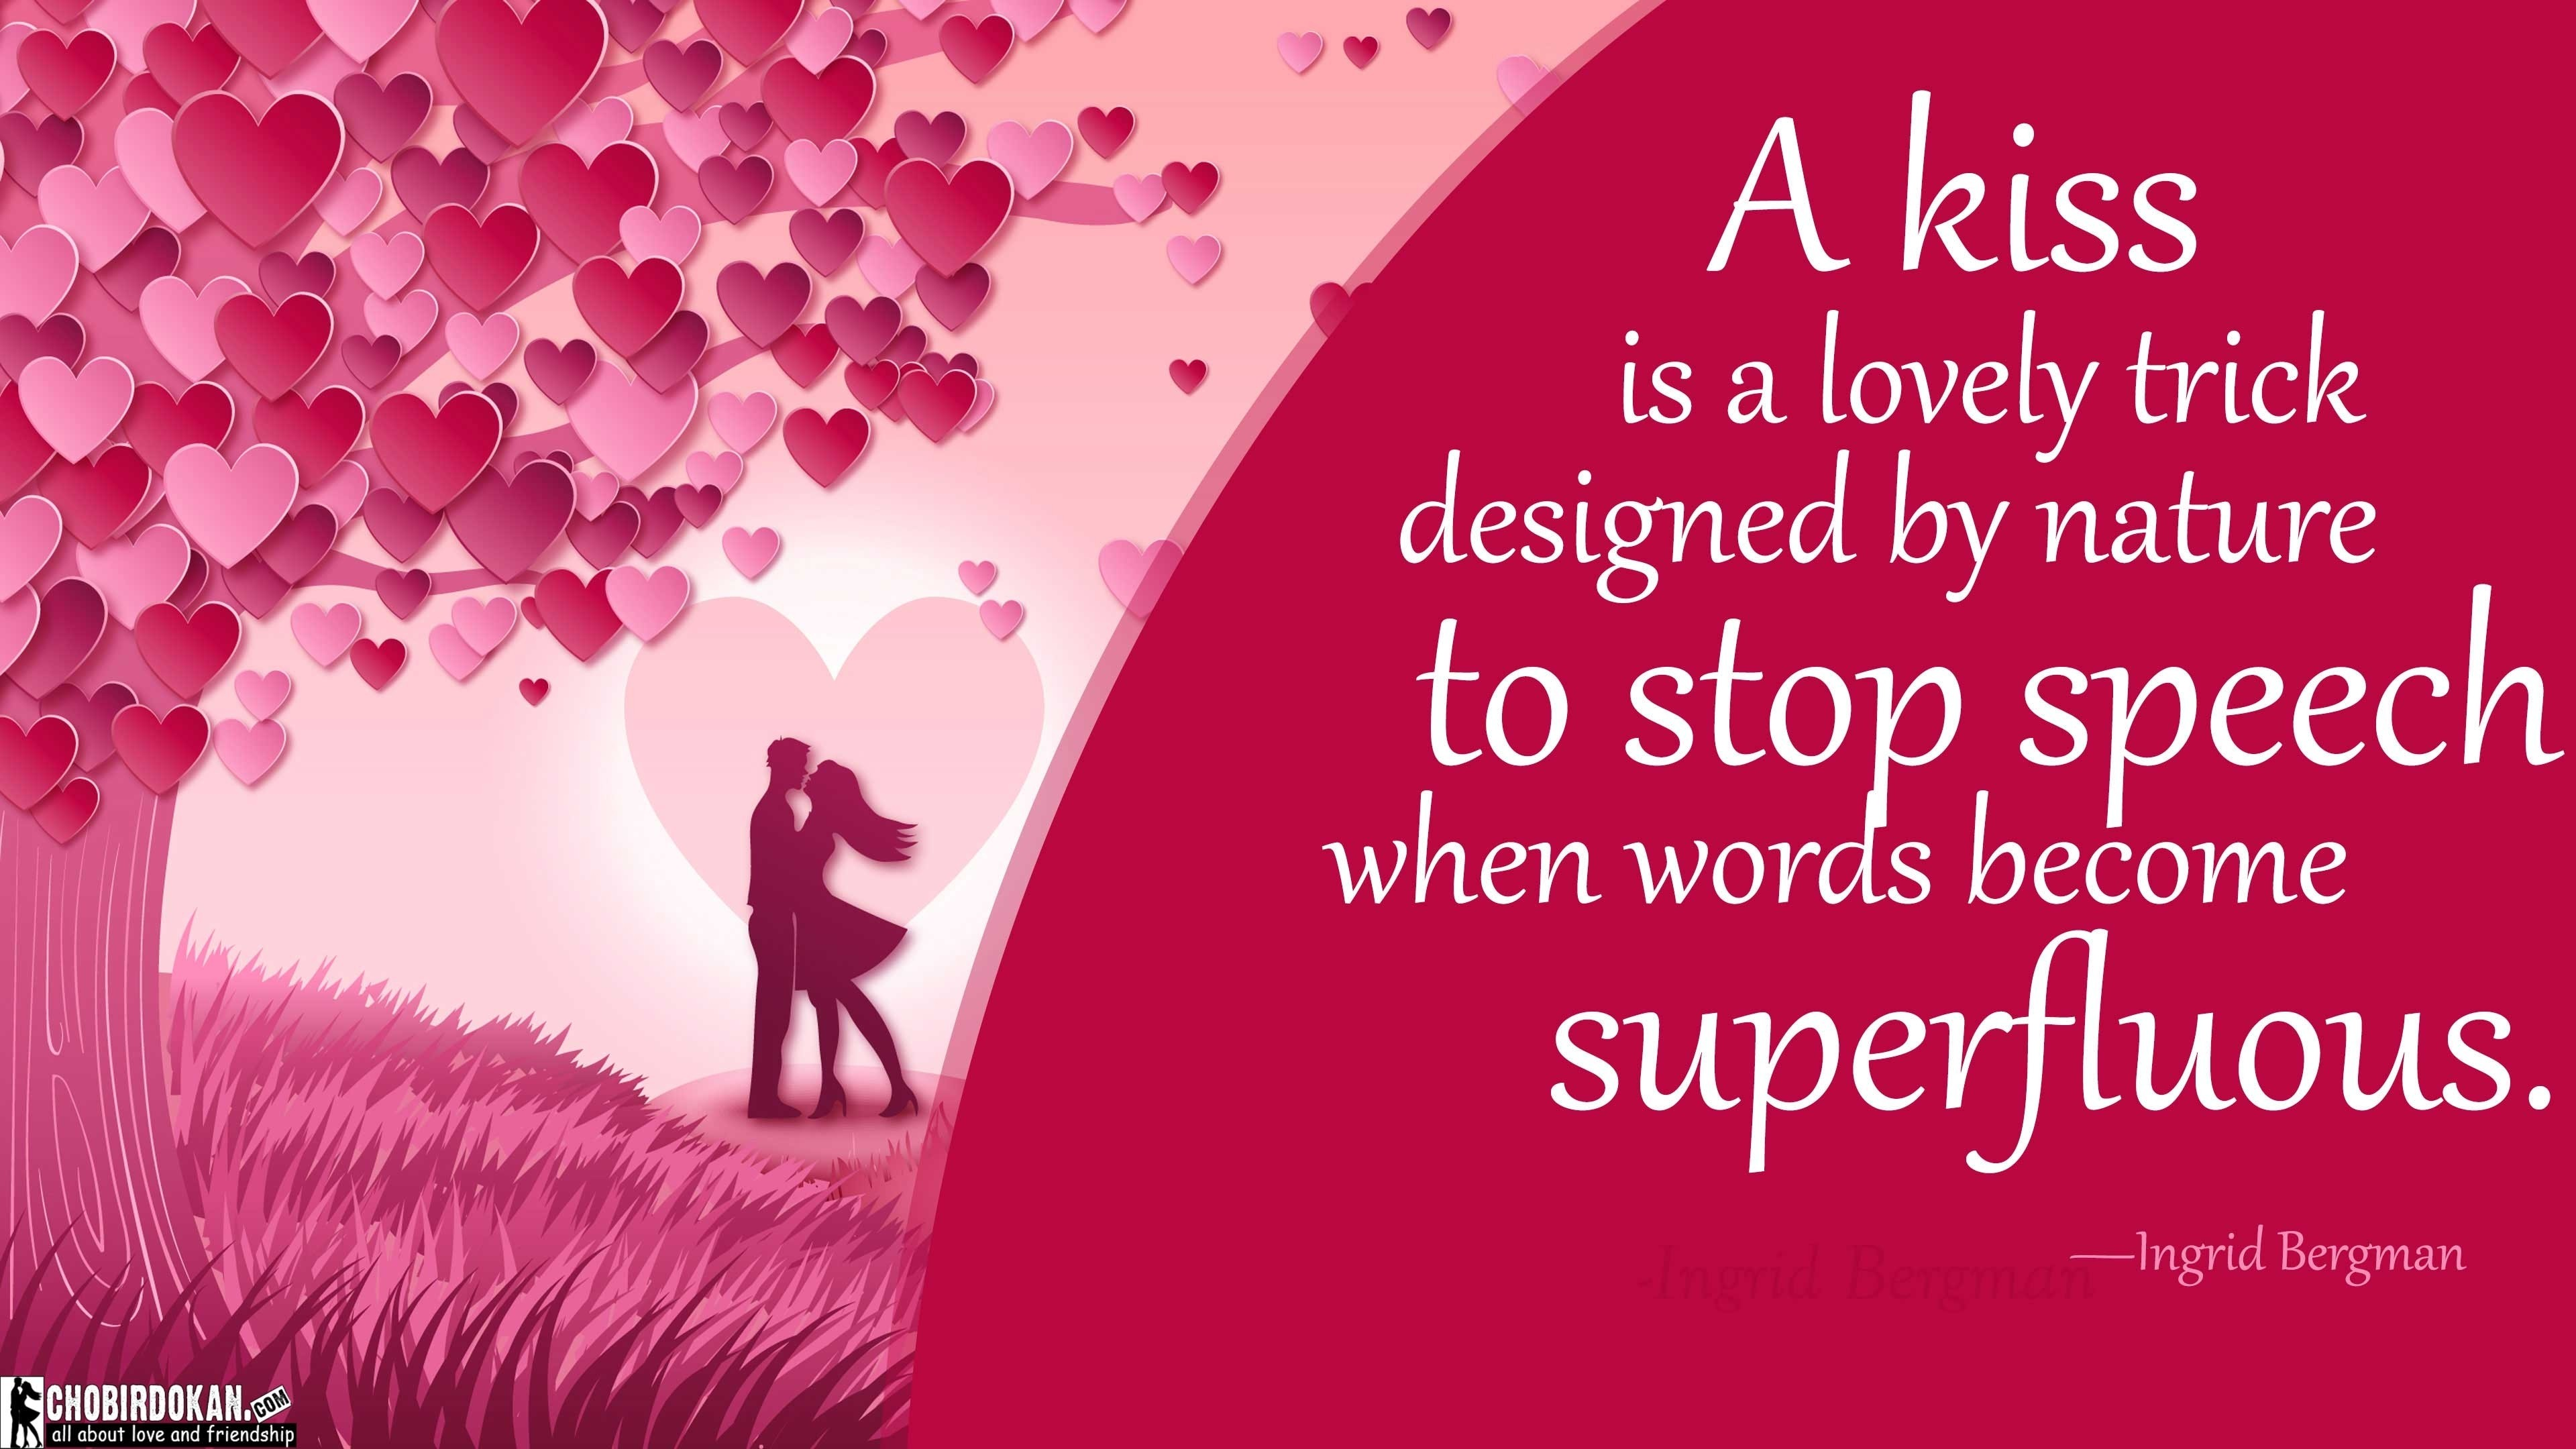 Cute Love Quotes Wallpapers: Cute Wallpapers With Quotes (66+ Images